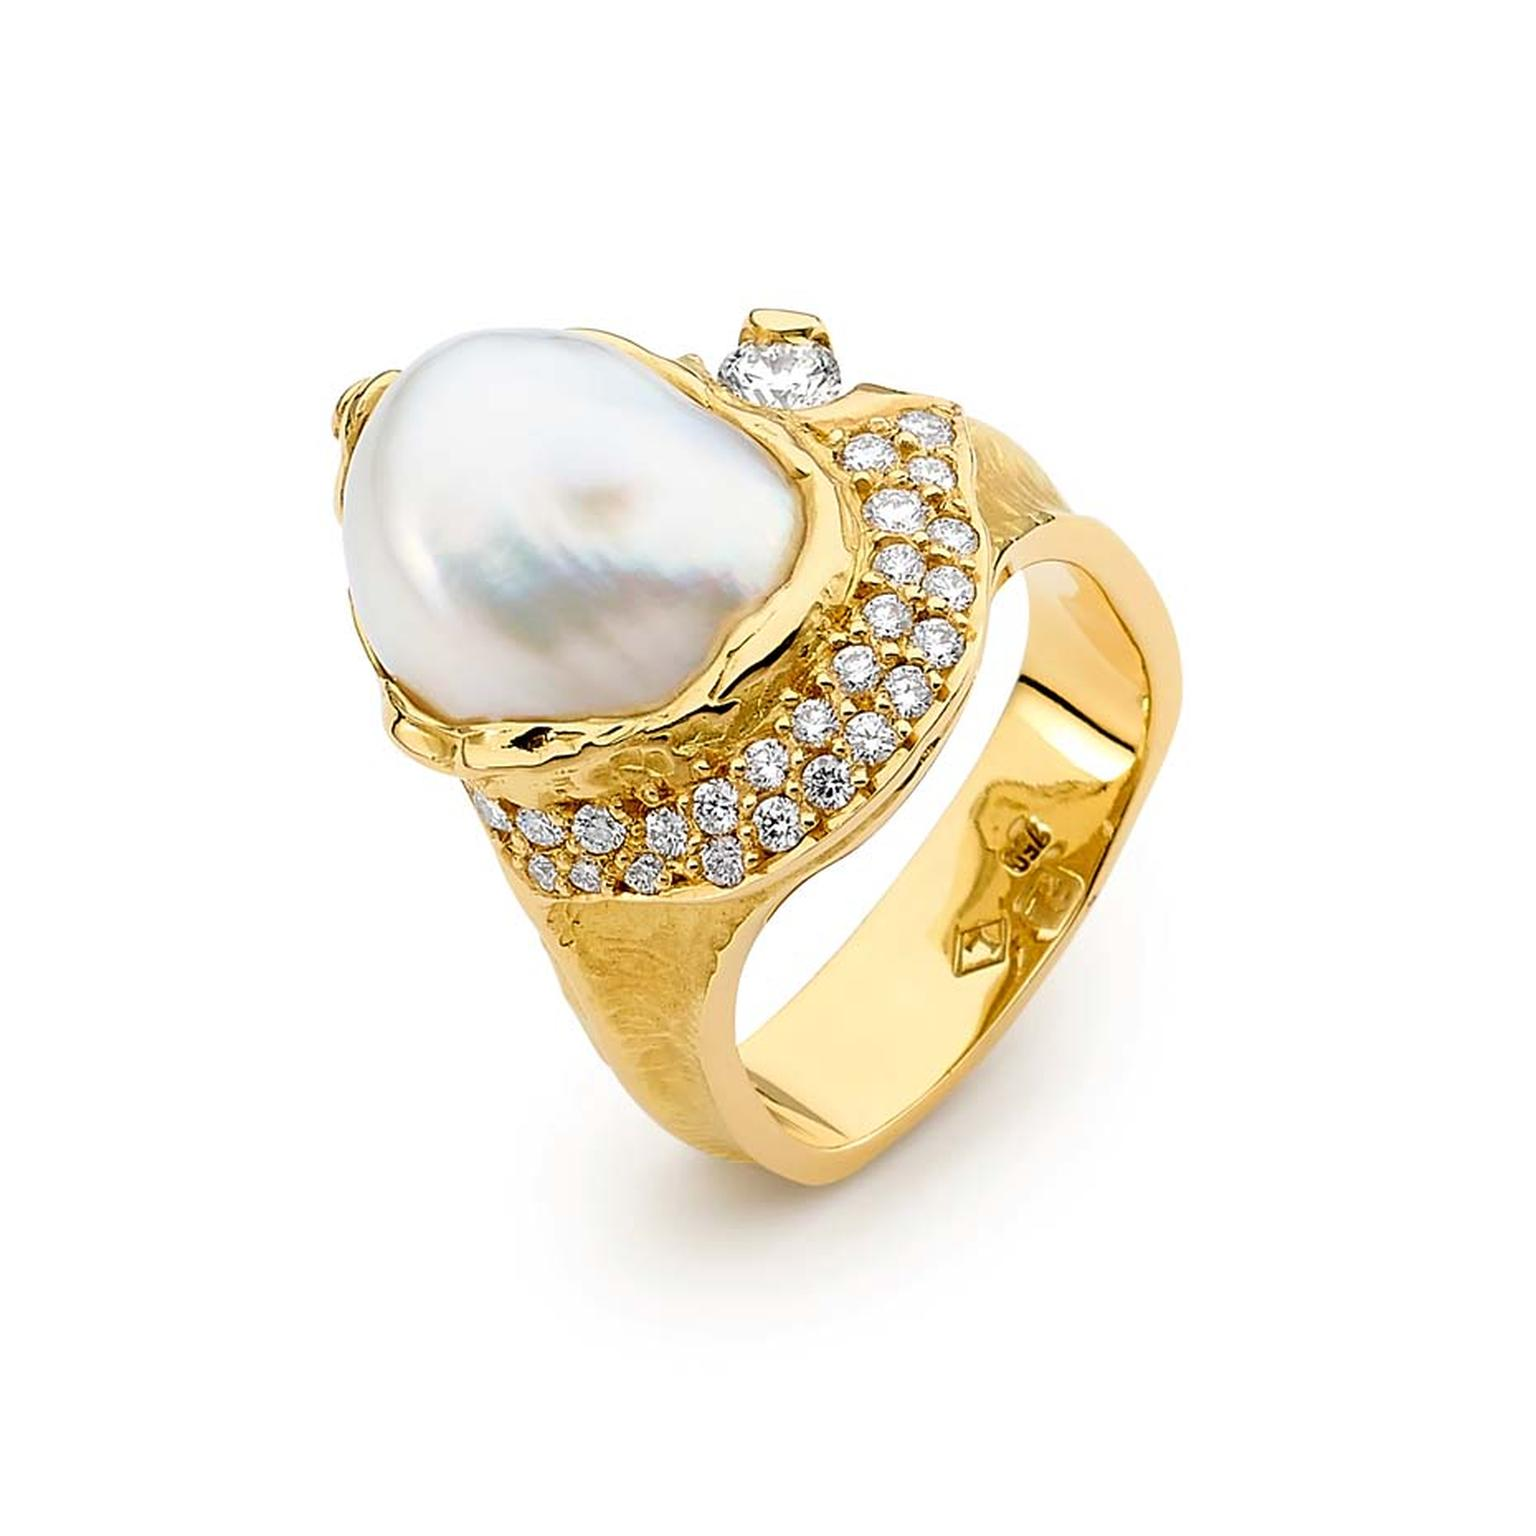 Australian Pearls_Linneys_18ct yellow gold Australian South Sea seedless pearl and diamond ring 7,900.jpg